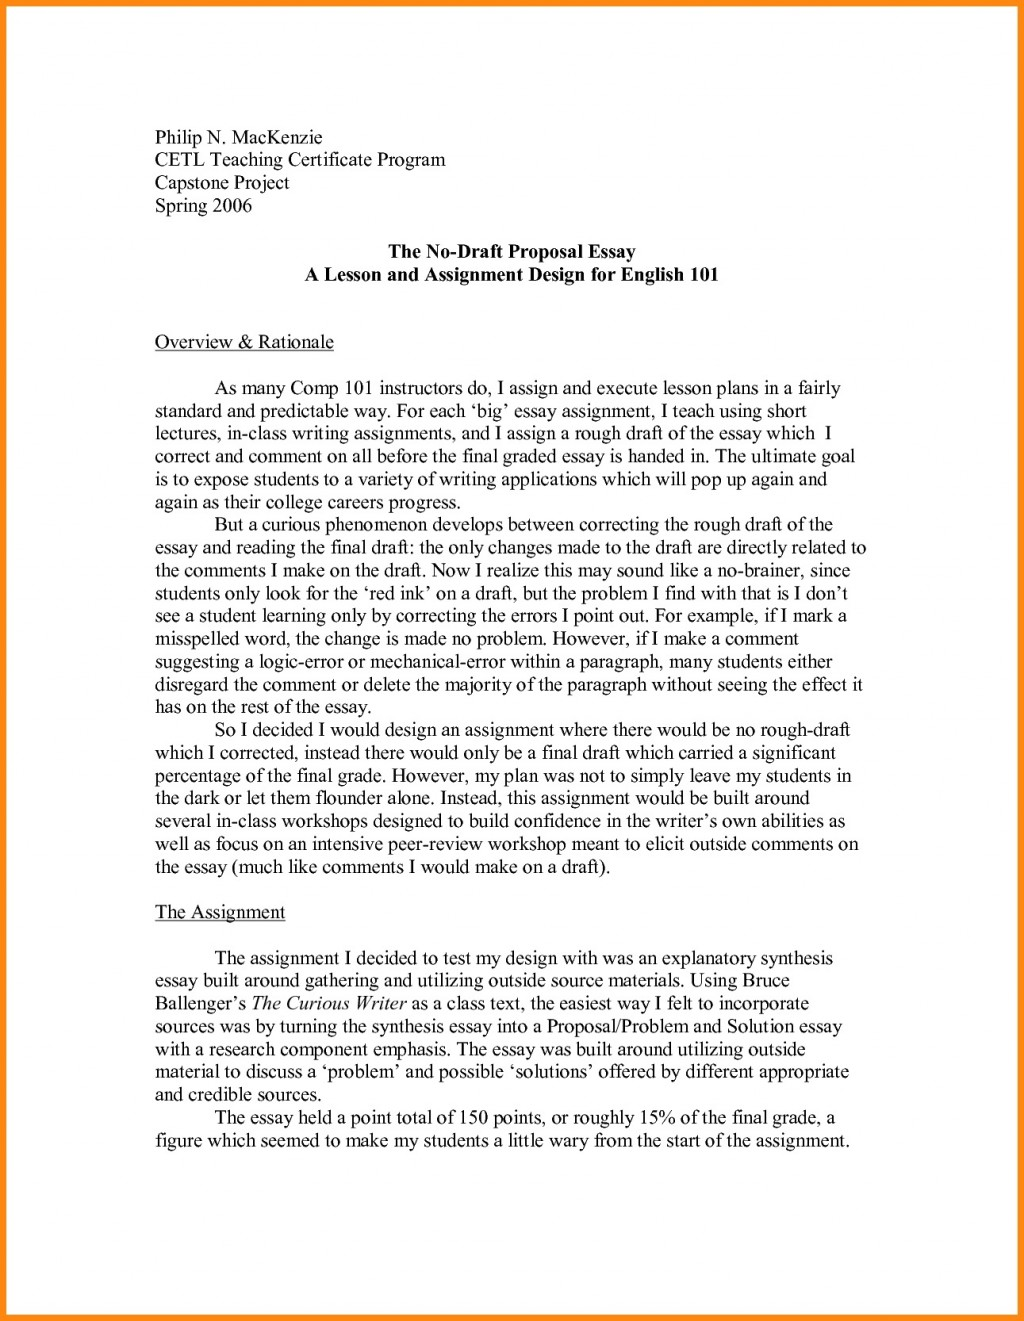 019 Research Paper Papers Topics For Finance Topic Proposal Example Essay At Phenomenal Best 2019 Sample About Education Term In Computer Science Large